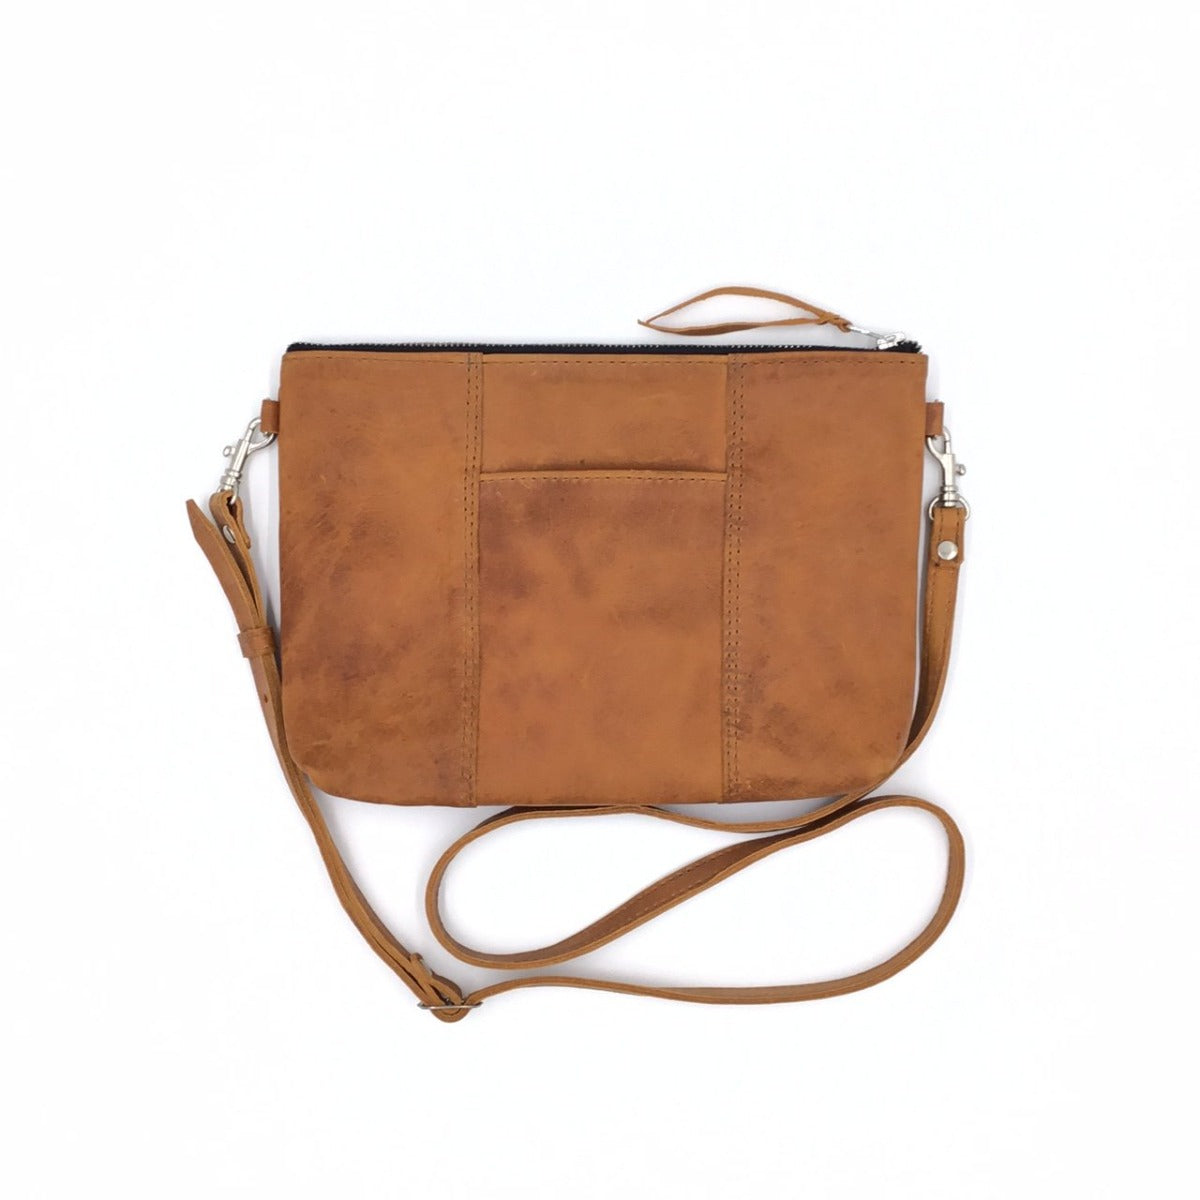 "NEW STYLE! Antigua Tan Leather Cross Body Clutch with front pocket, silver hardware  (1"" base)"